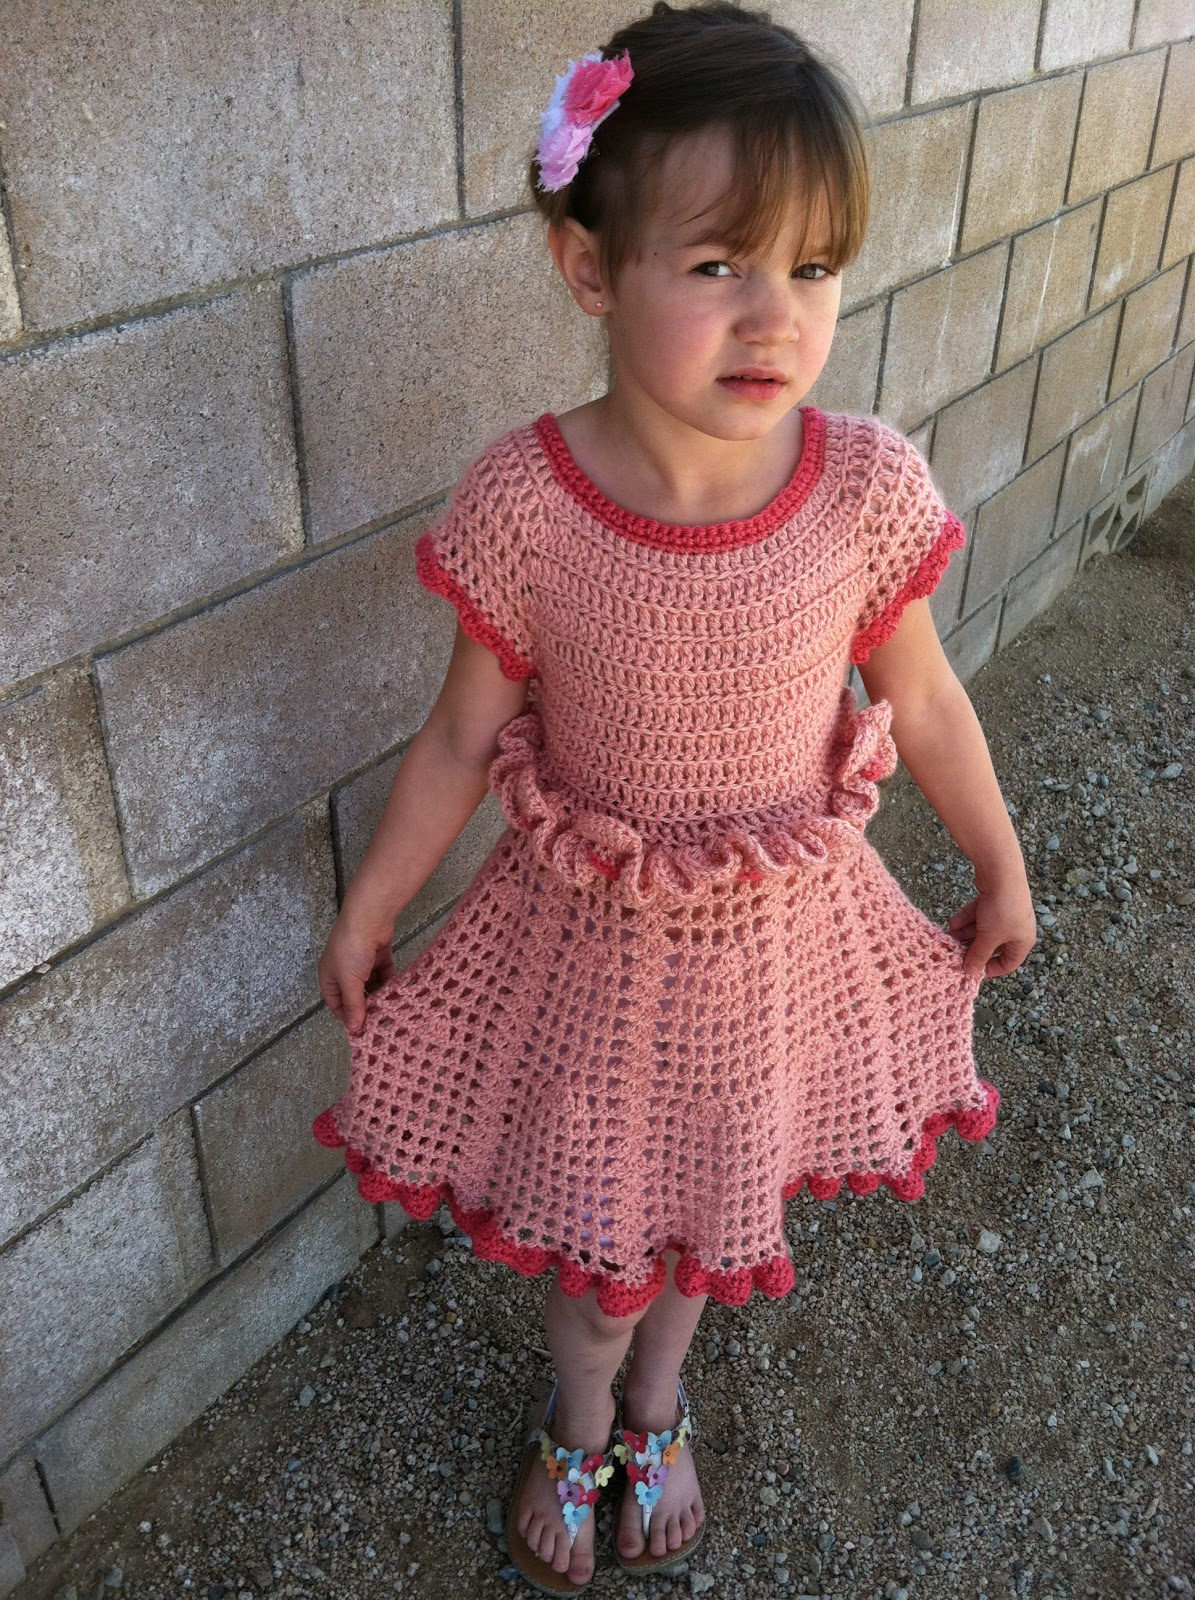 A Military Wifes Tale: Petal Ruffle Dress